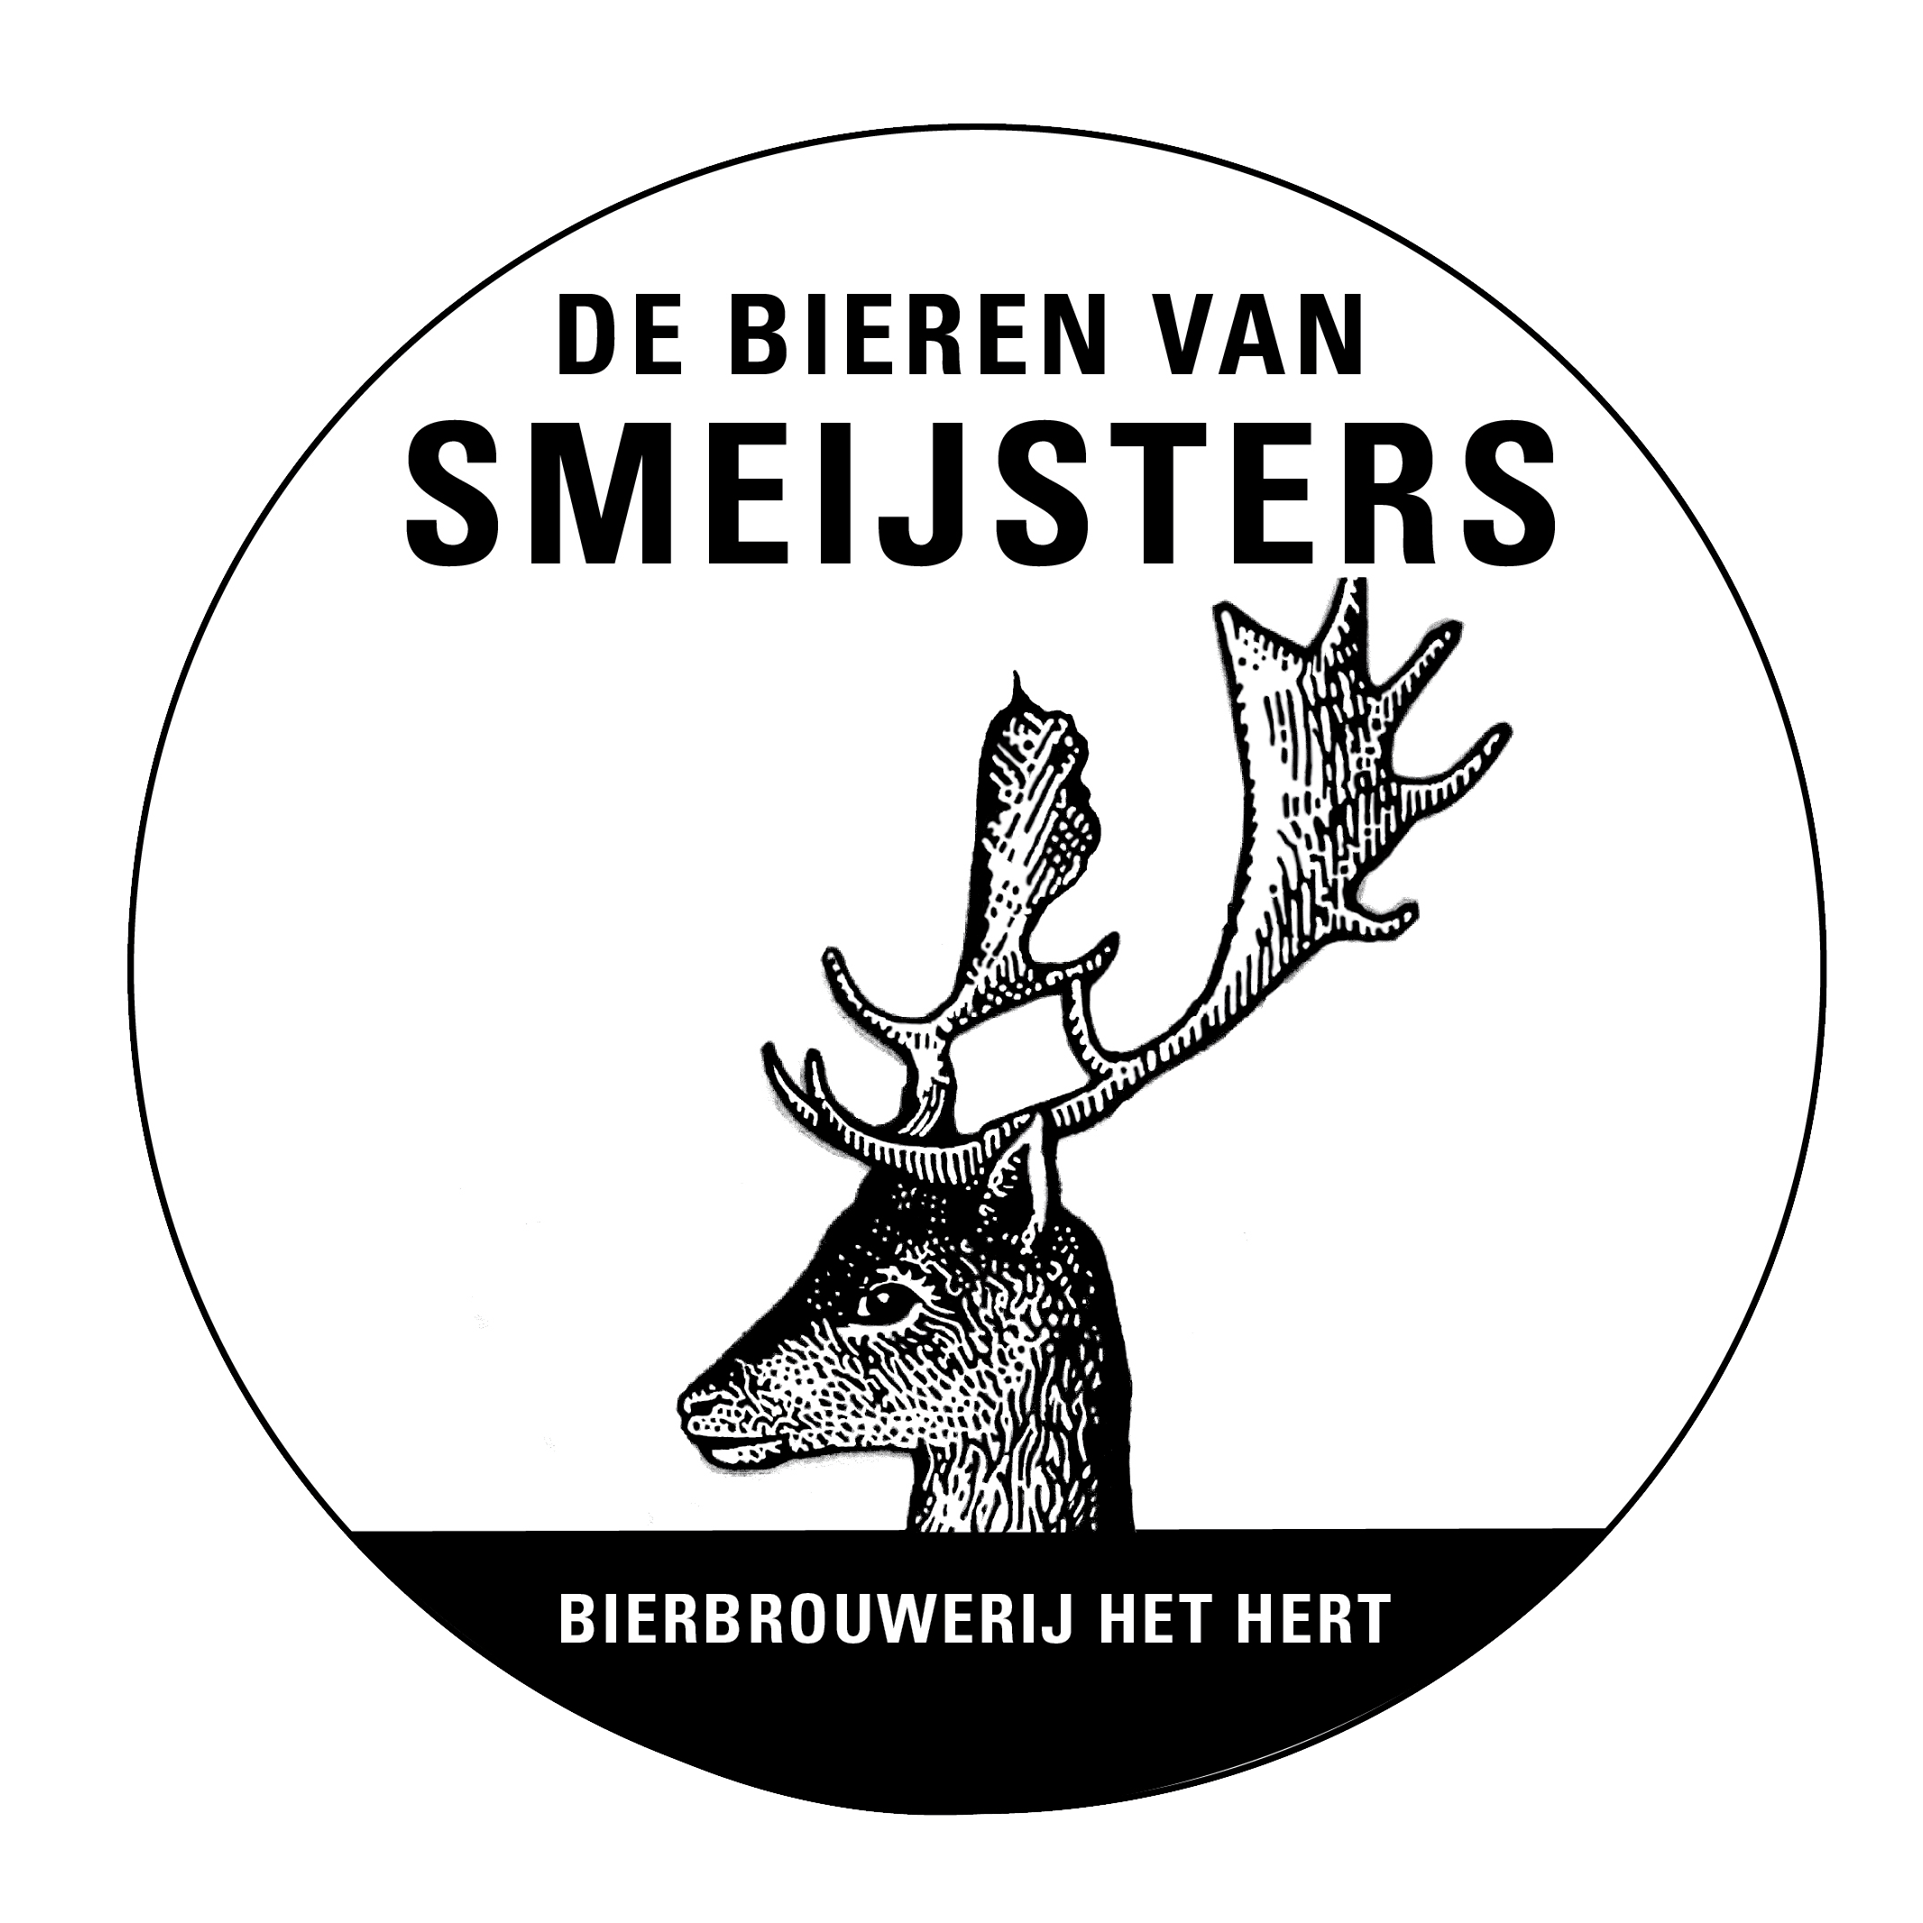 001959-20180522172243-smeijsters.png